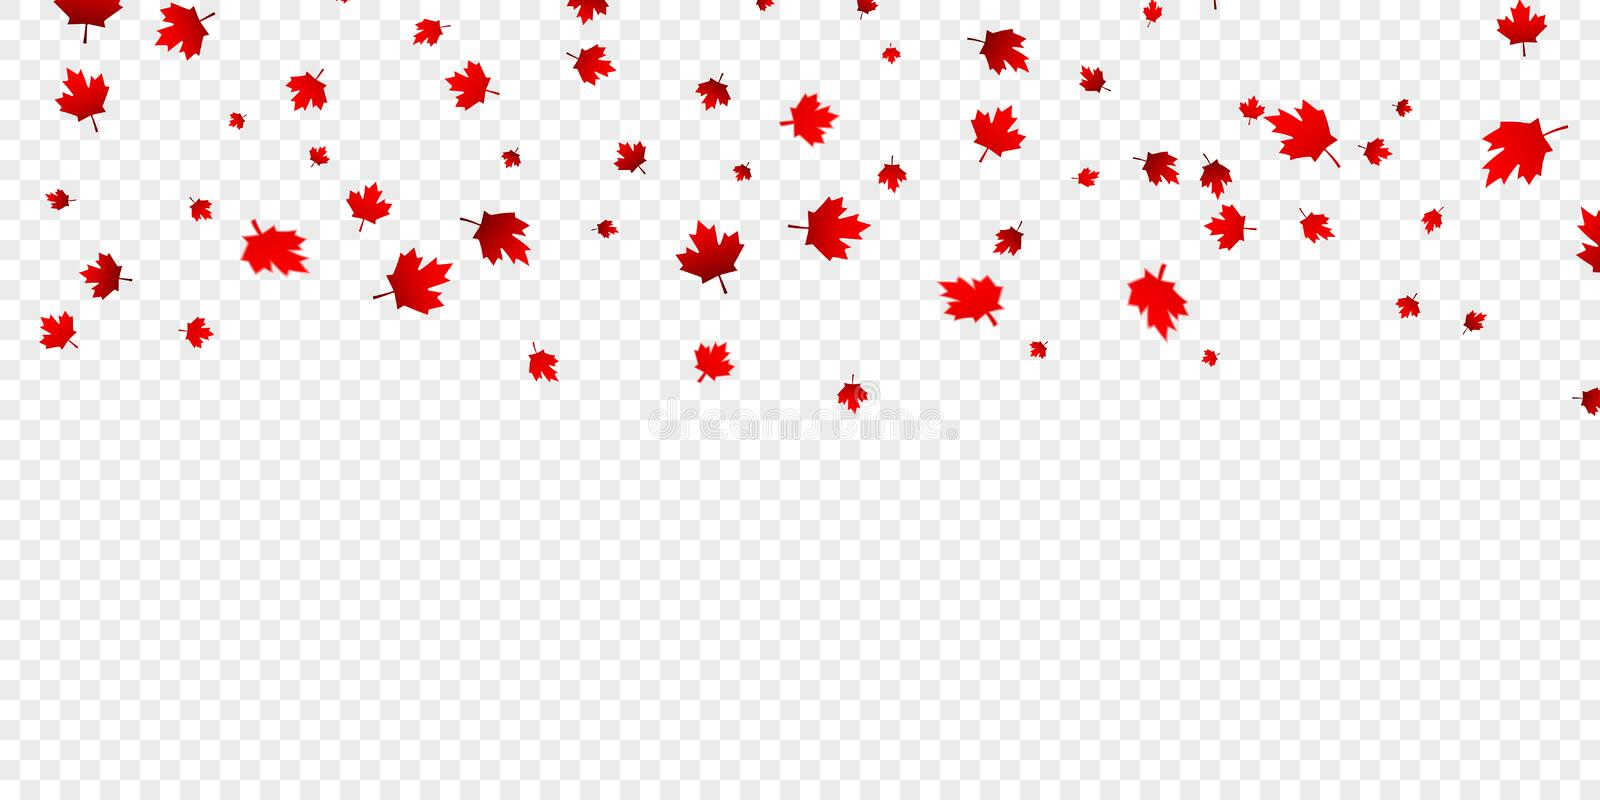 Canadian maple leaves background. Falling red leaves for Canada Day 1st July vector illustration